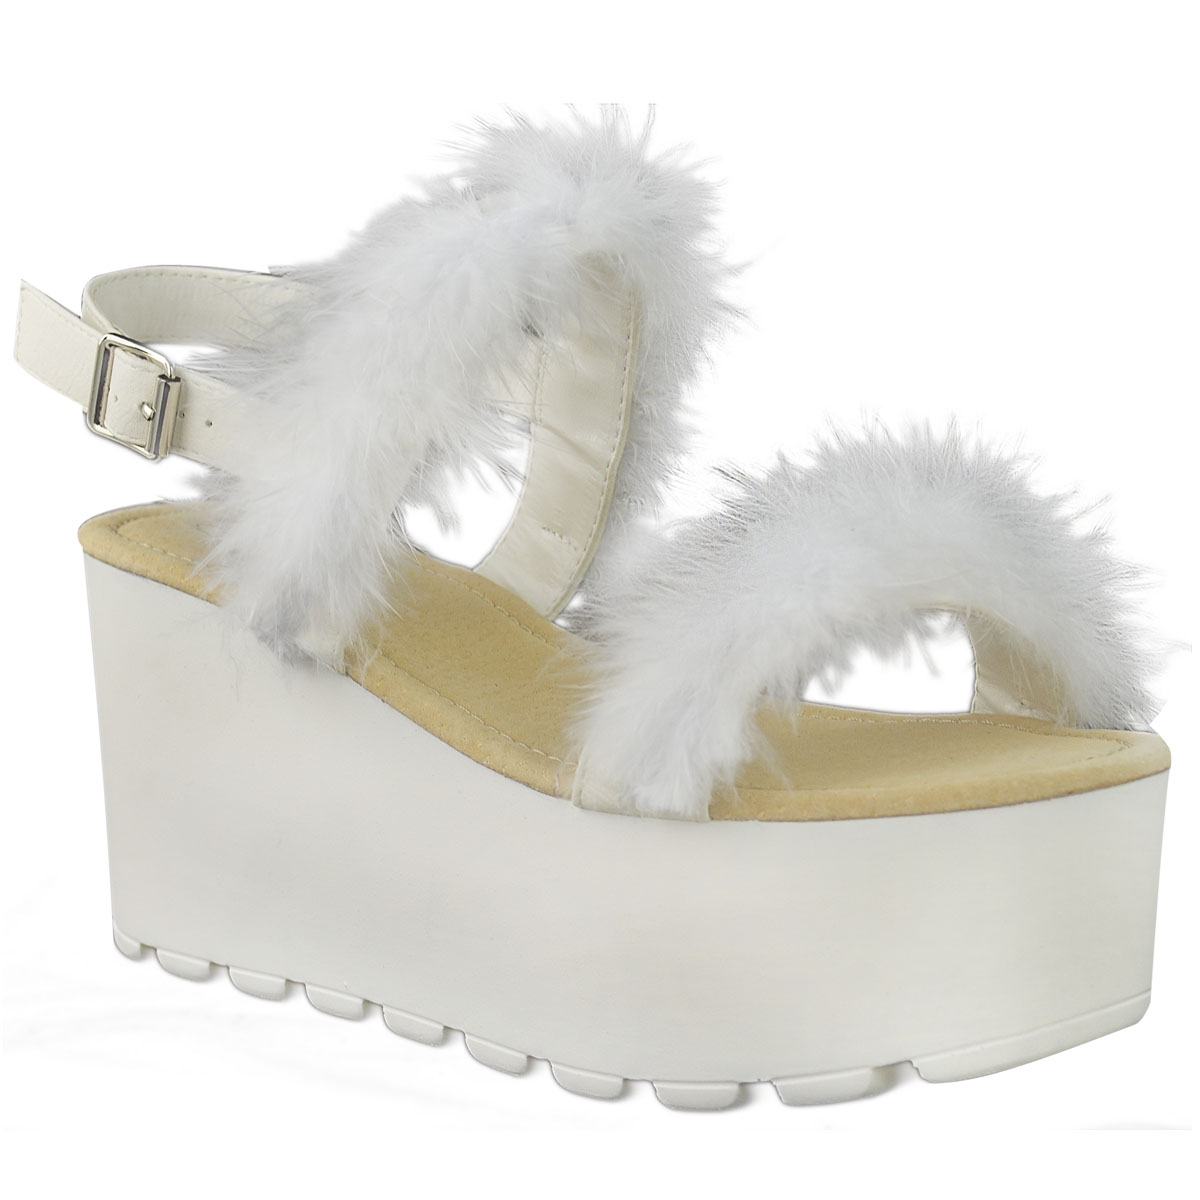 WOMENS LADIES WEDGE SANDALS MARABOU FUR PLATFORMS CHUNKY SHOES FEATHER SIZE